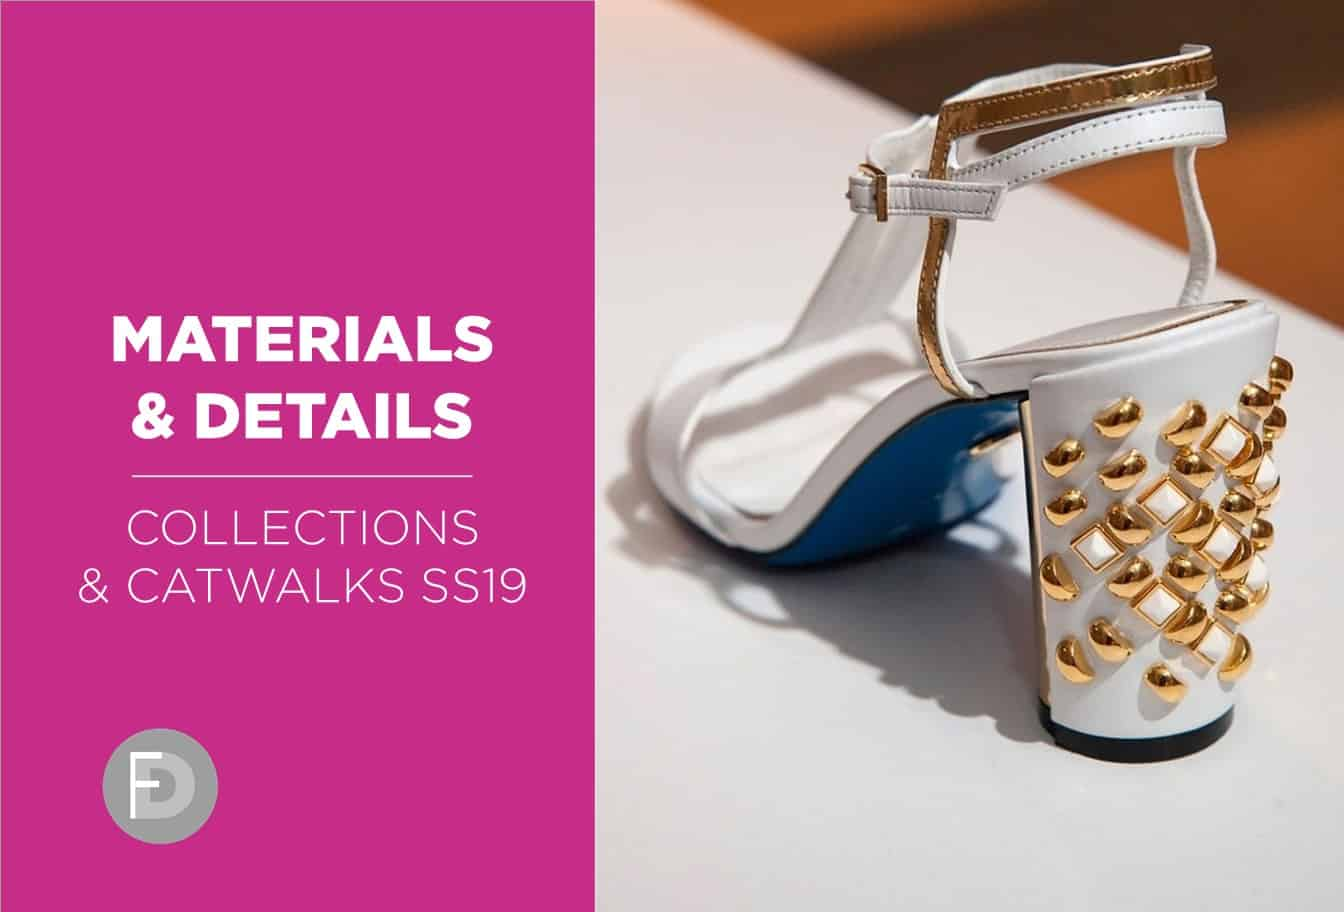 shoes collections catwalks Materials ss19